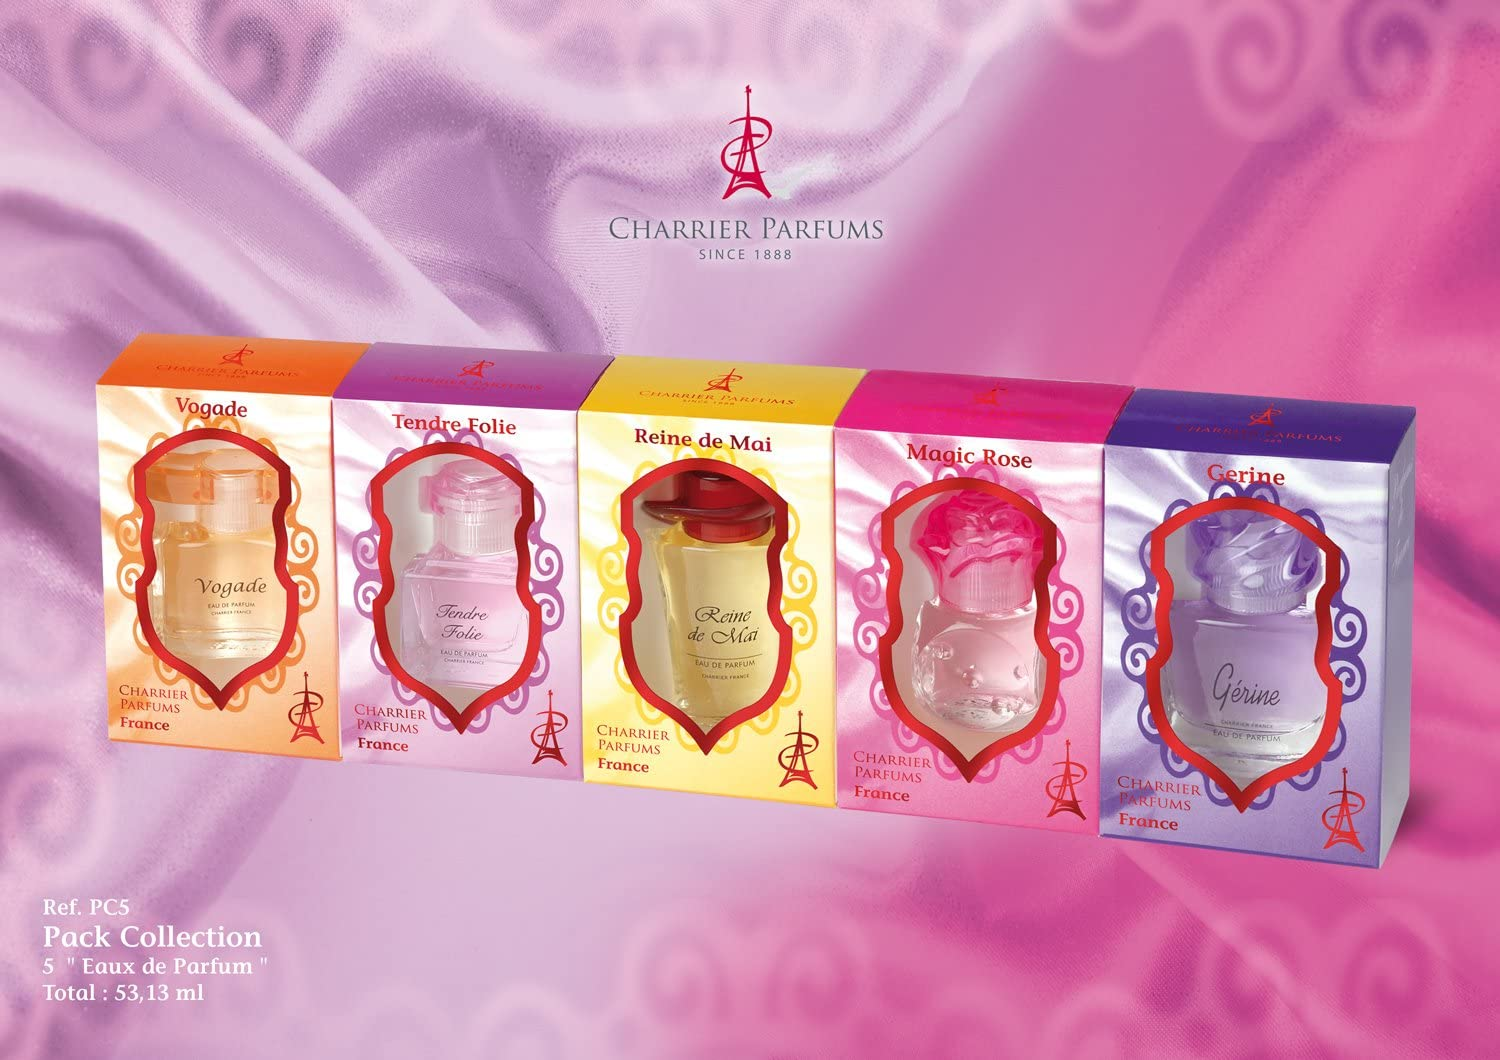 Charrier Parfums Pack Collection Set de 5 estuches de agua de perfume Miniatures total 53,13 ml: Amazon.es: Belleza